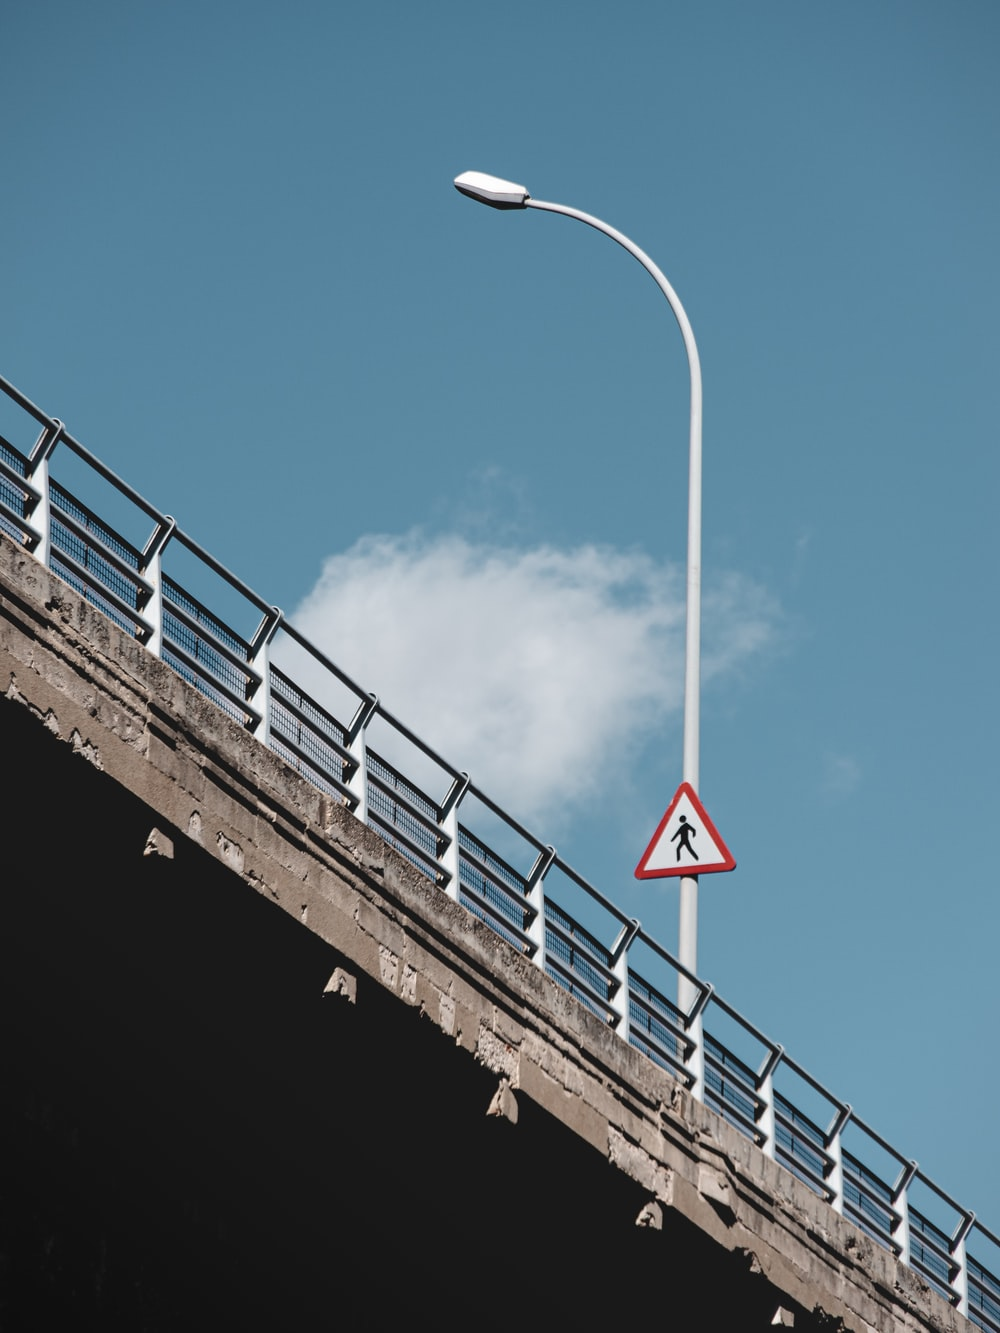 white and red bridge under blue sky during daytime